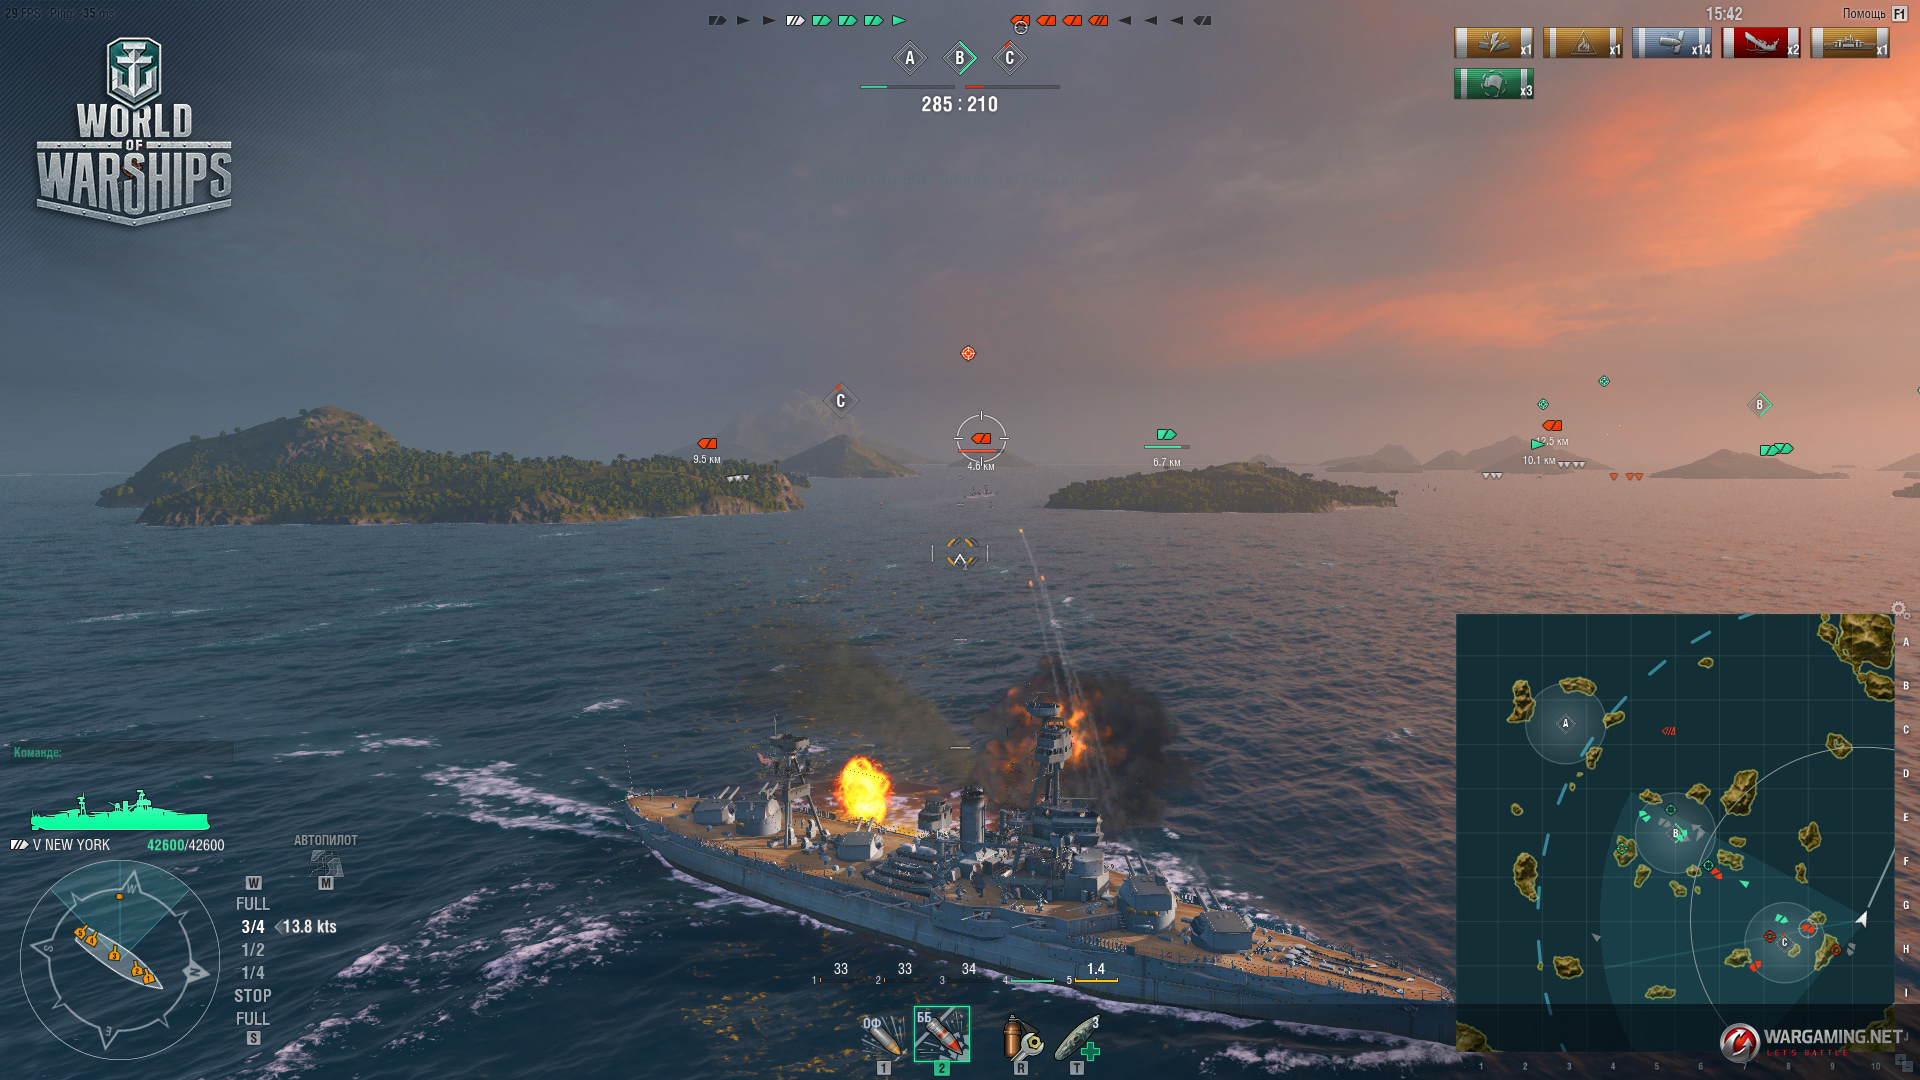 бонус код world of warships на albany